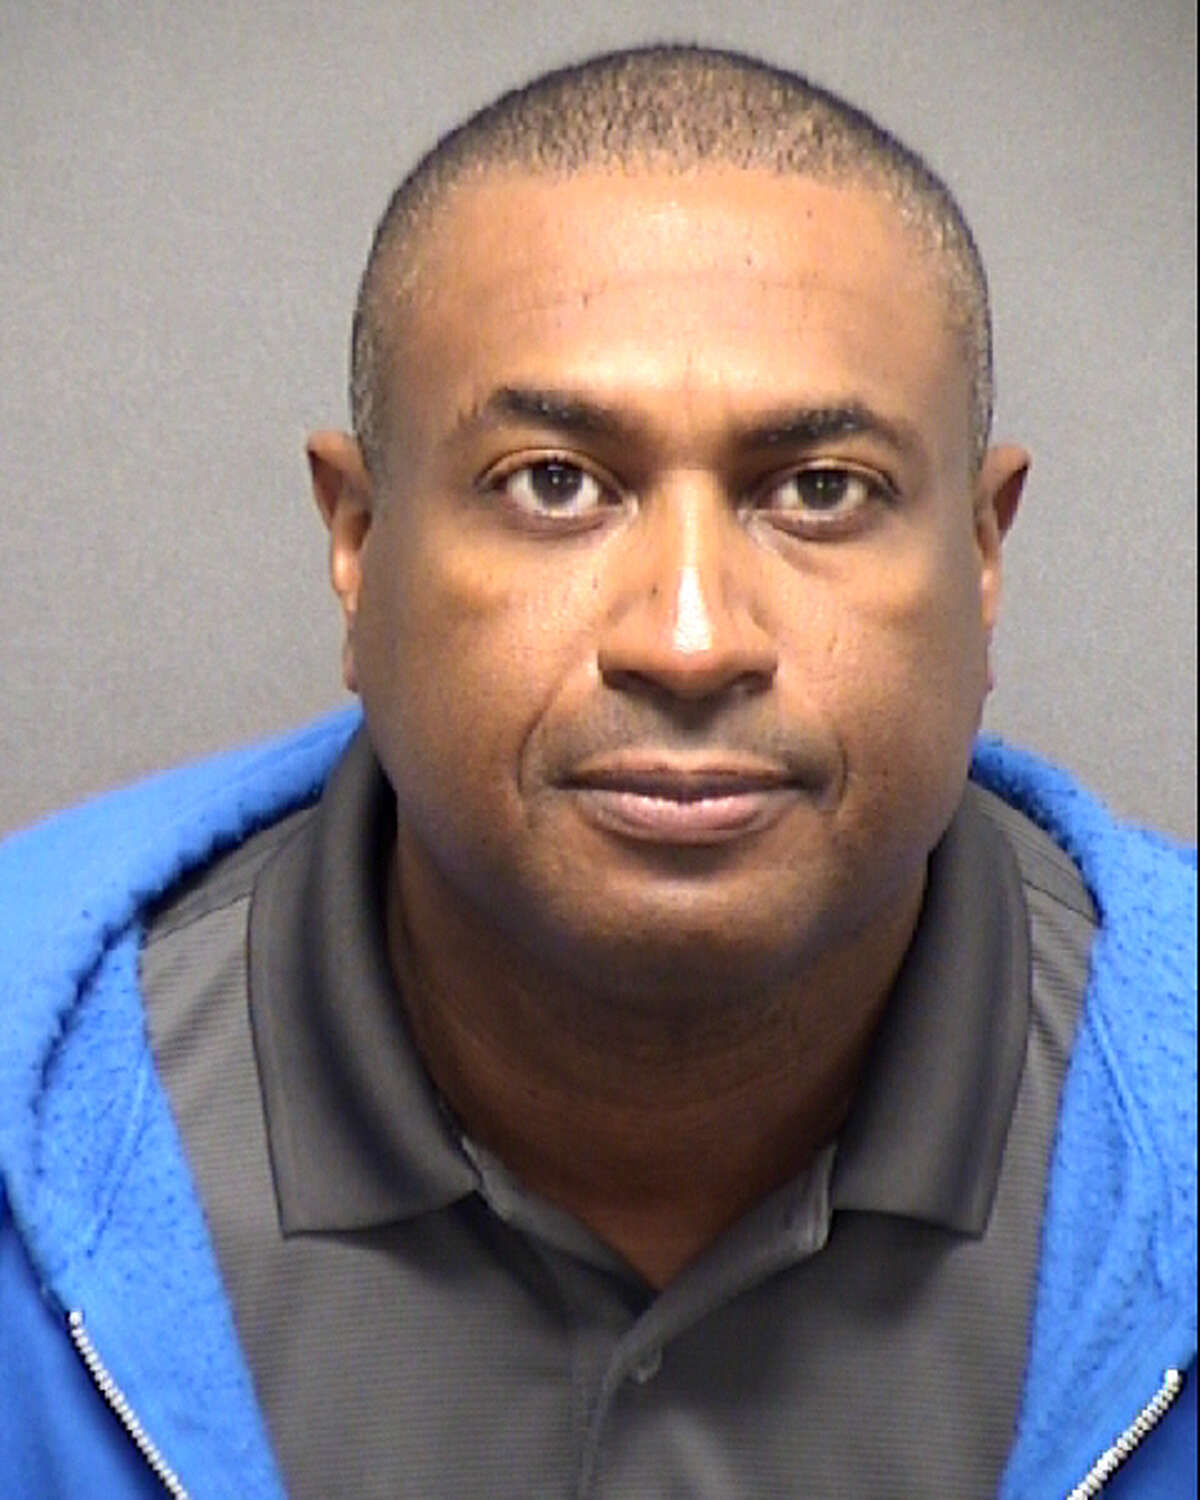 Sheriff's deputy Floyd Berry was arrested and booked on three counts of official oppression on Saturday, Dec. 7, 2019.